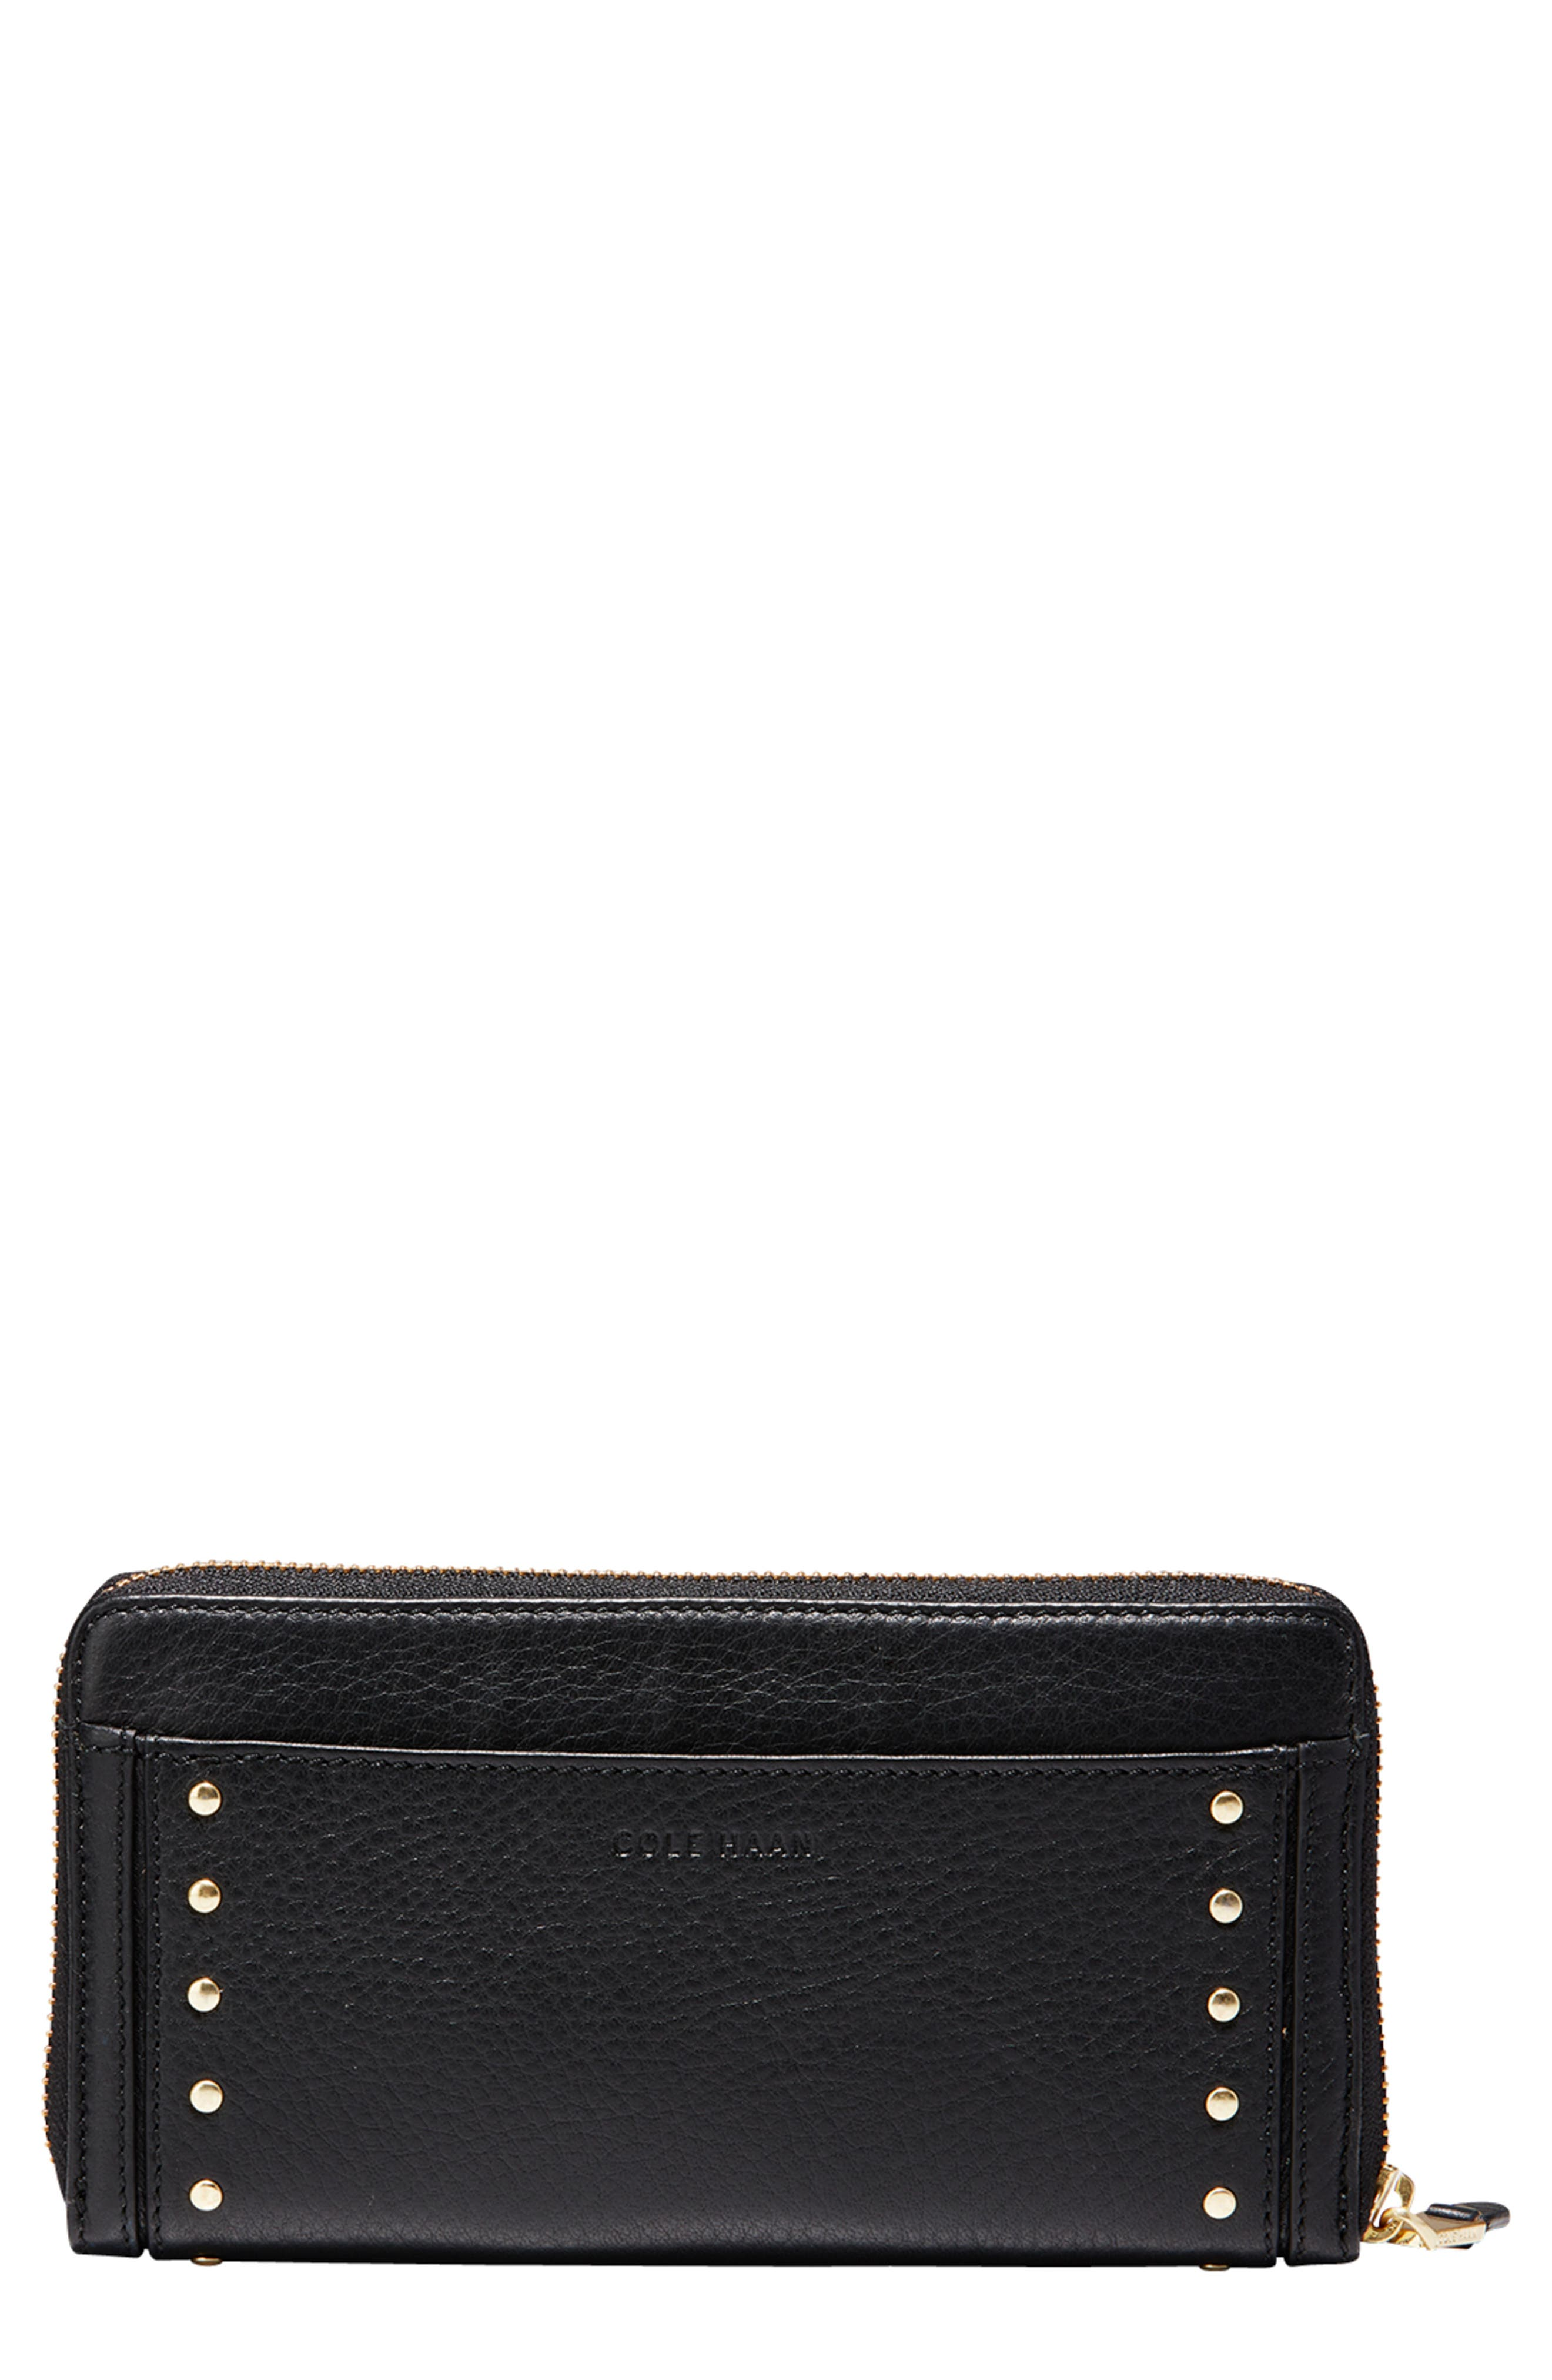 Cassidy Leather RFID Continental Zip Wallet,                             Main thumbnail 1, color,                             001